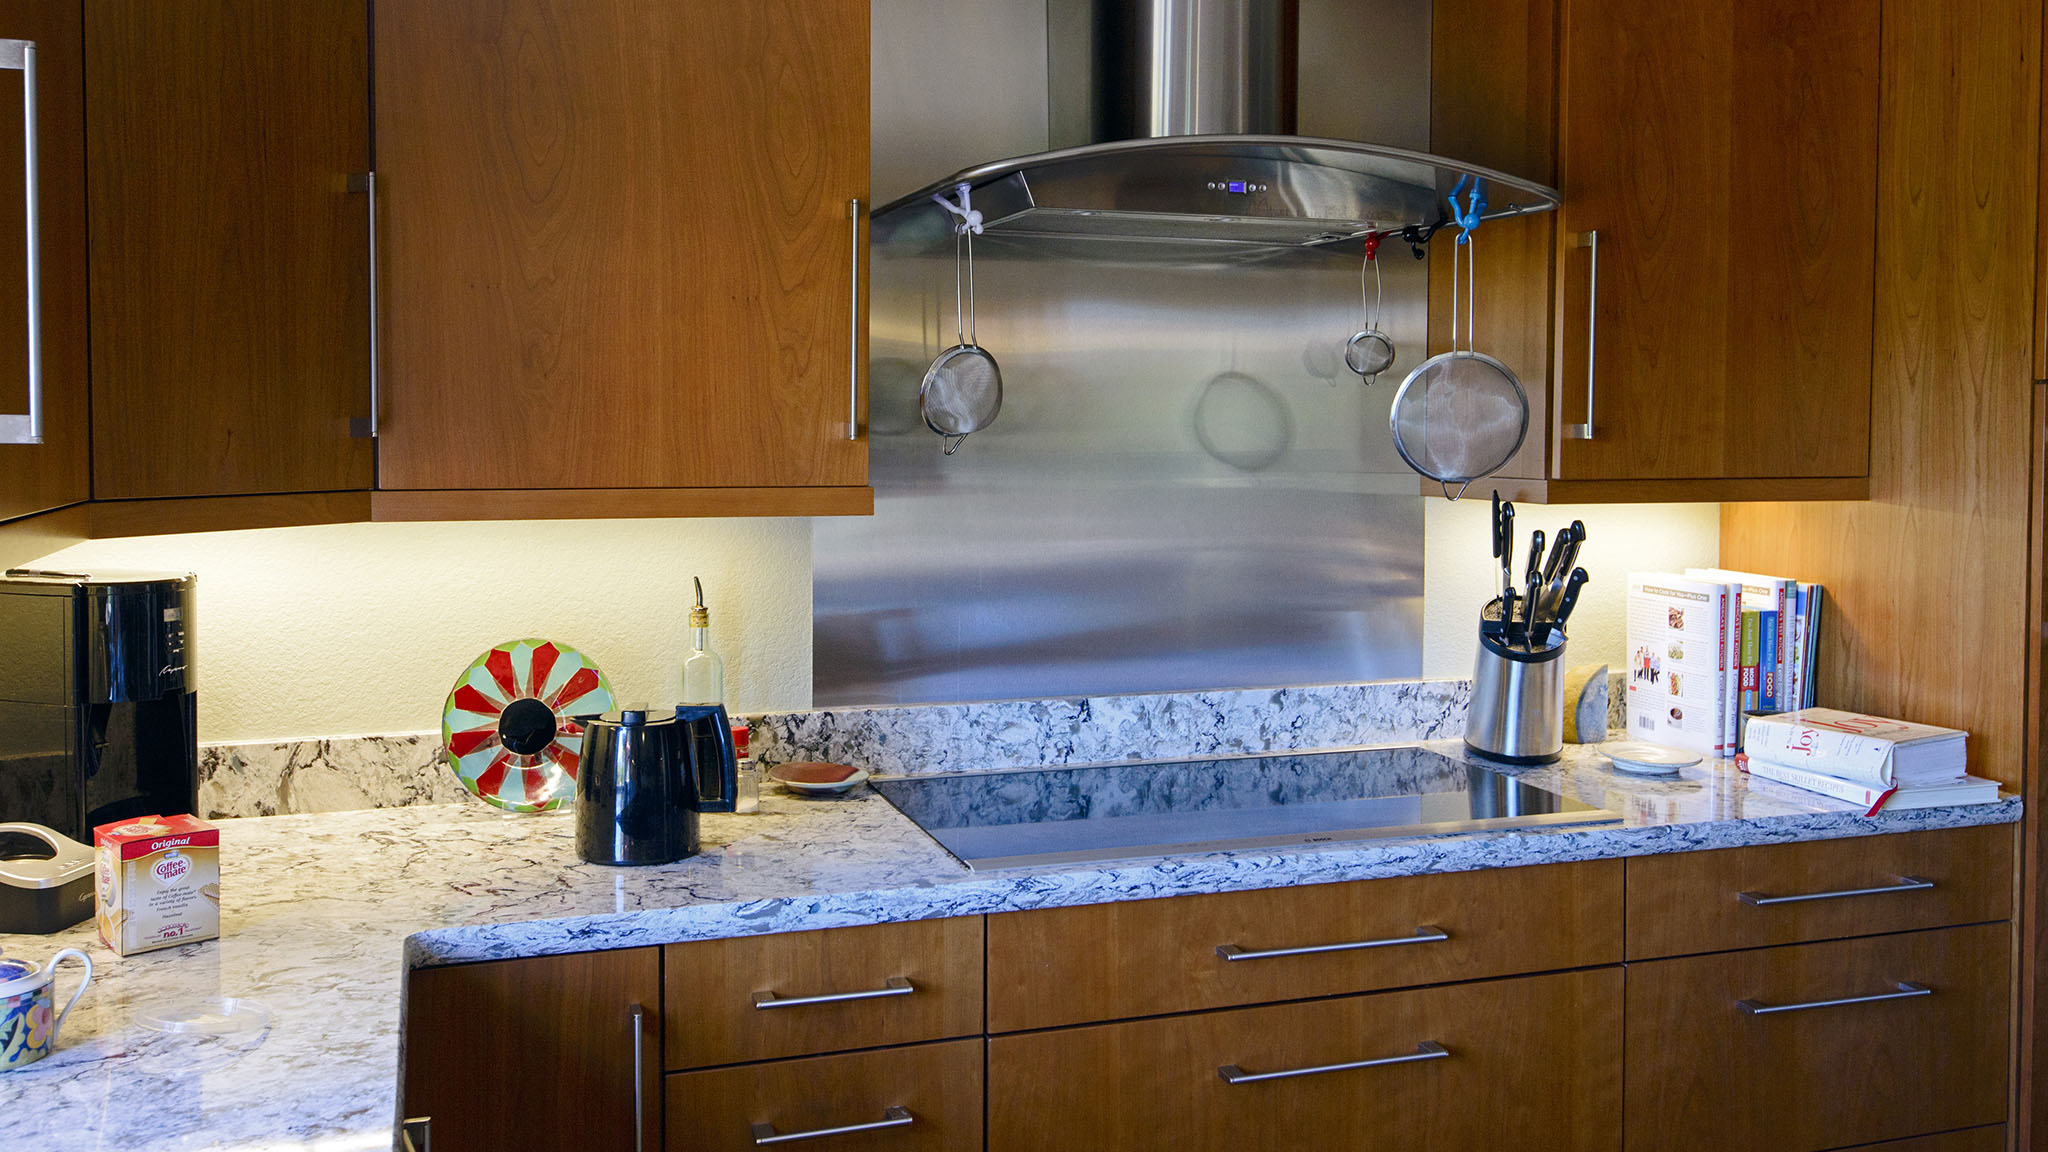 kitchen light fixture ideas low ceiling - How To Improve Your Home with LED Lighting Tested